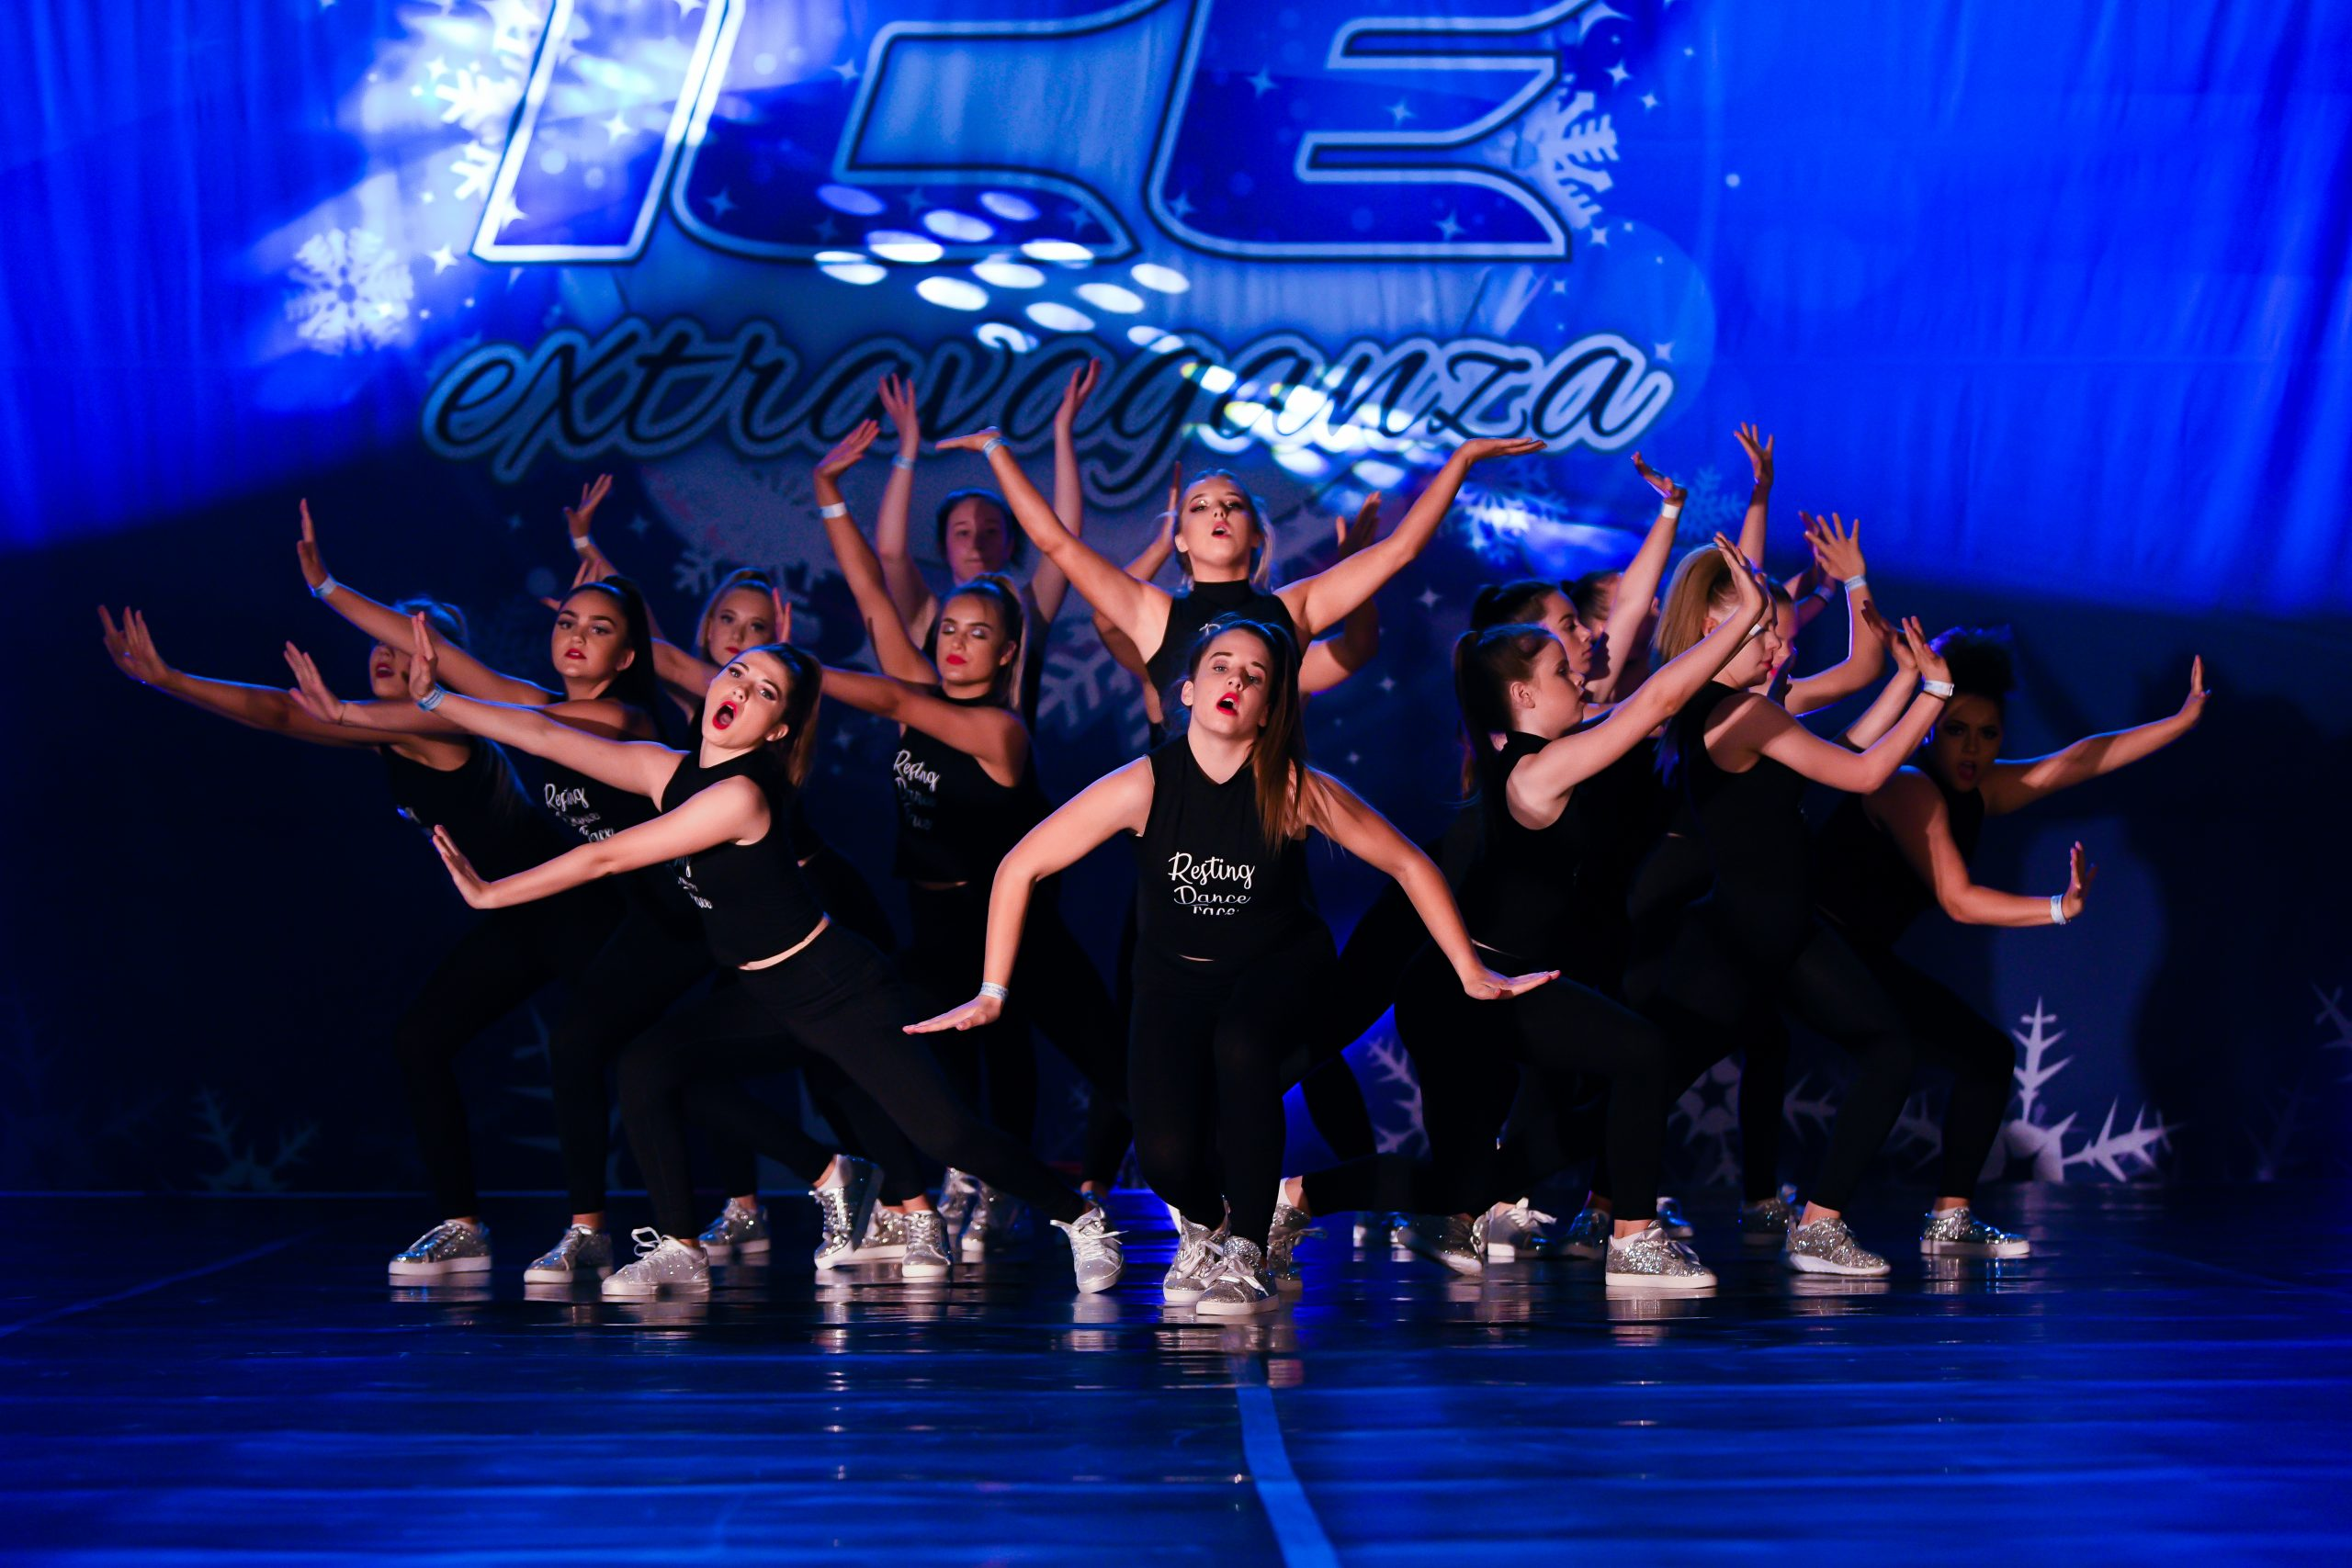 A dance team dressed in black compete at ICE Championships